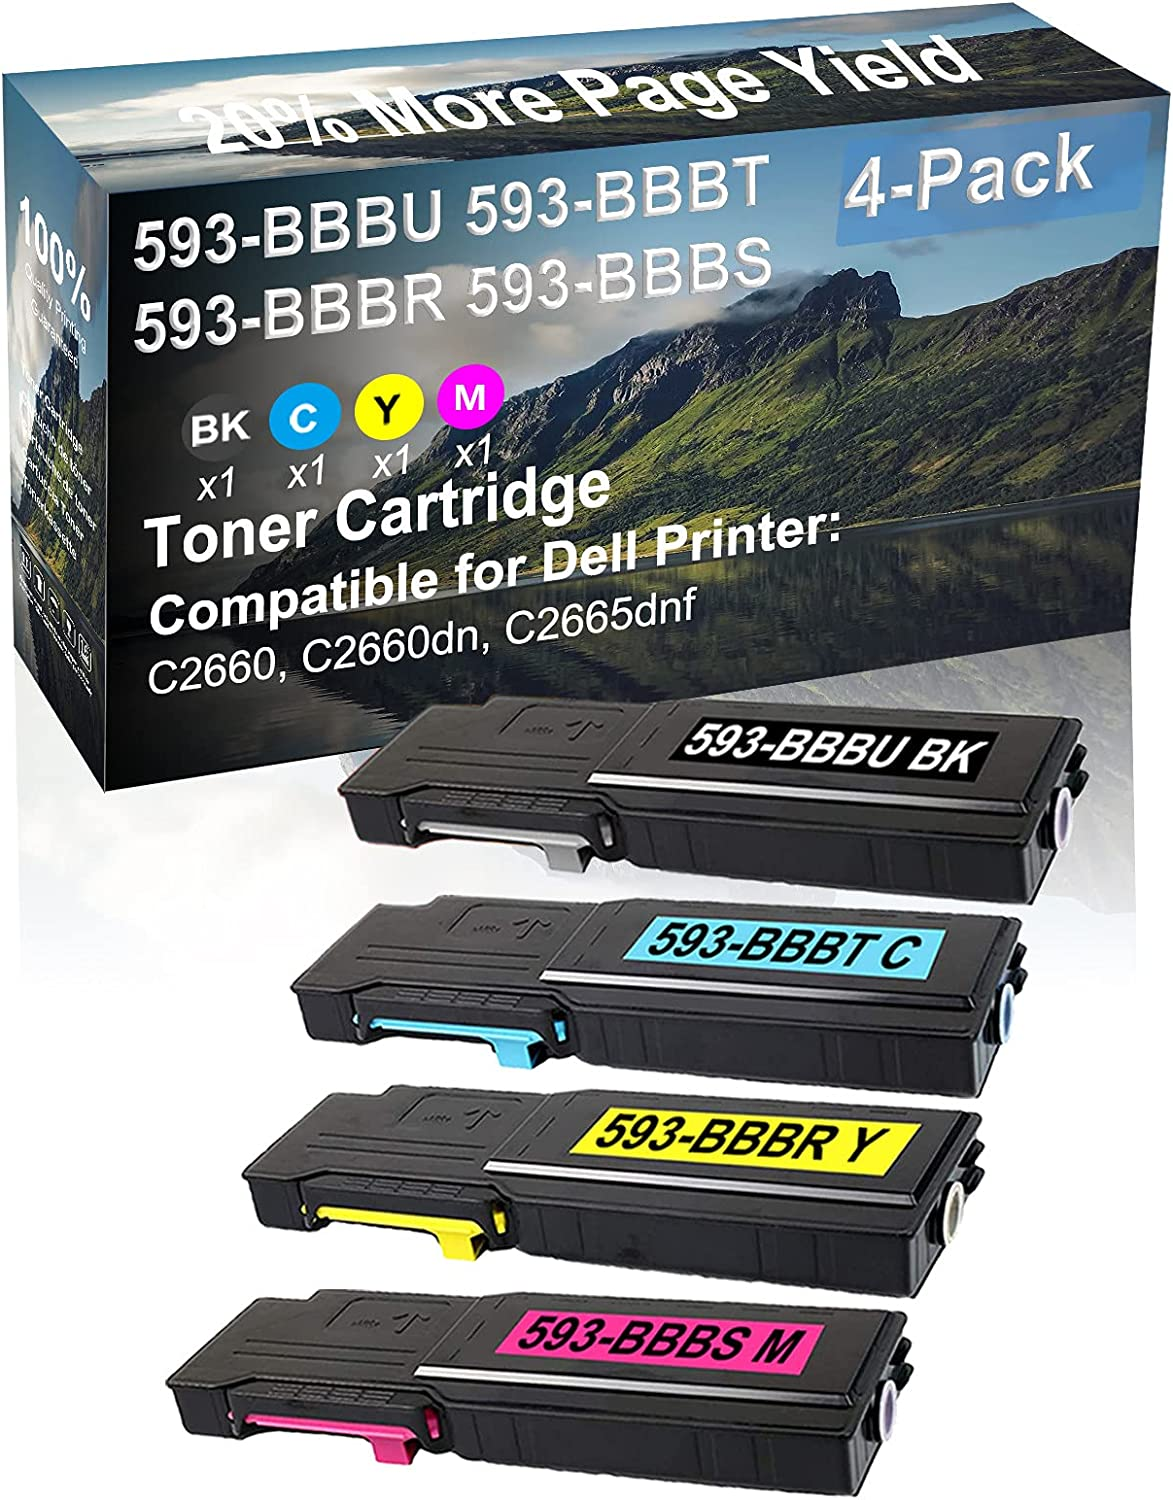 4-Pack (BK+C+Y+M) Compatible High Yield 593-BBBU+ 593-BBBT+ 593-BBBR+ 593-BBBS Laser Printer Toner Cartridge Used for Dell C2660, C2660dn, C2665dnf Printer